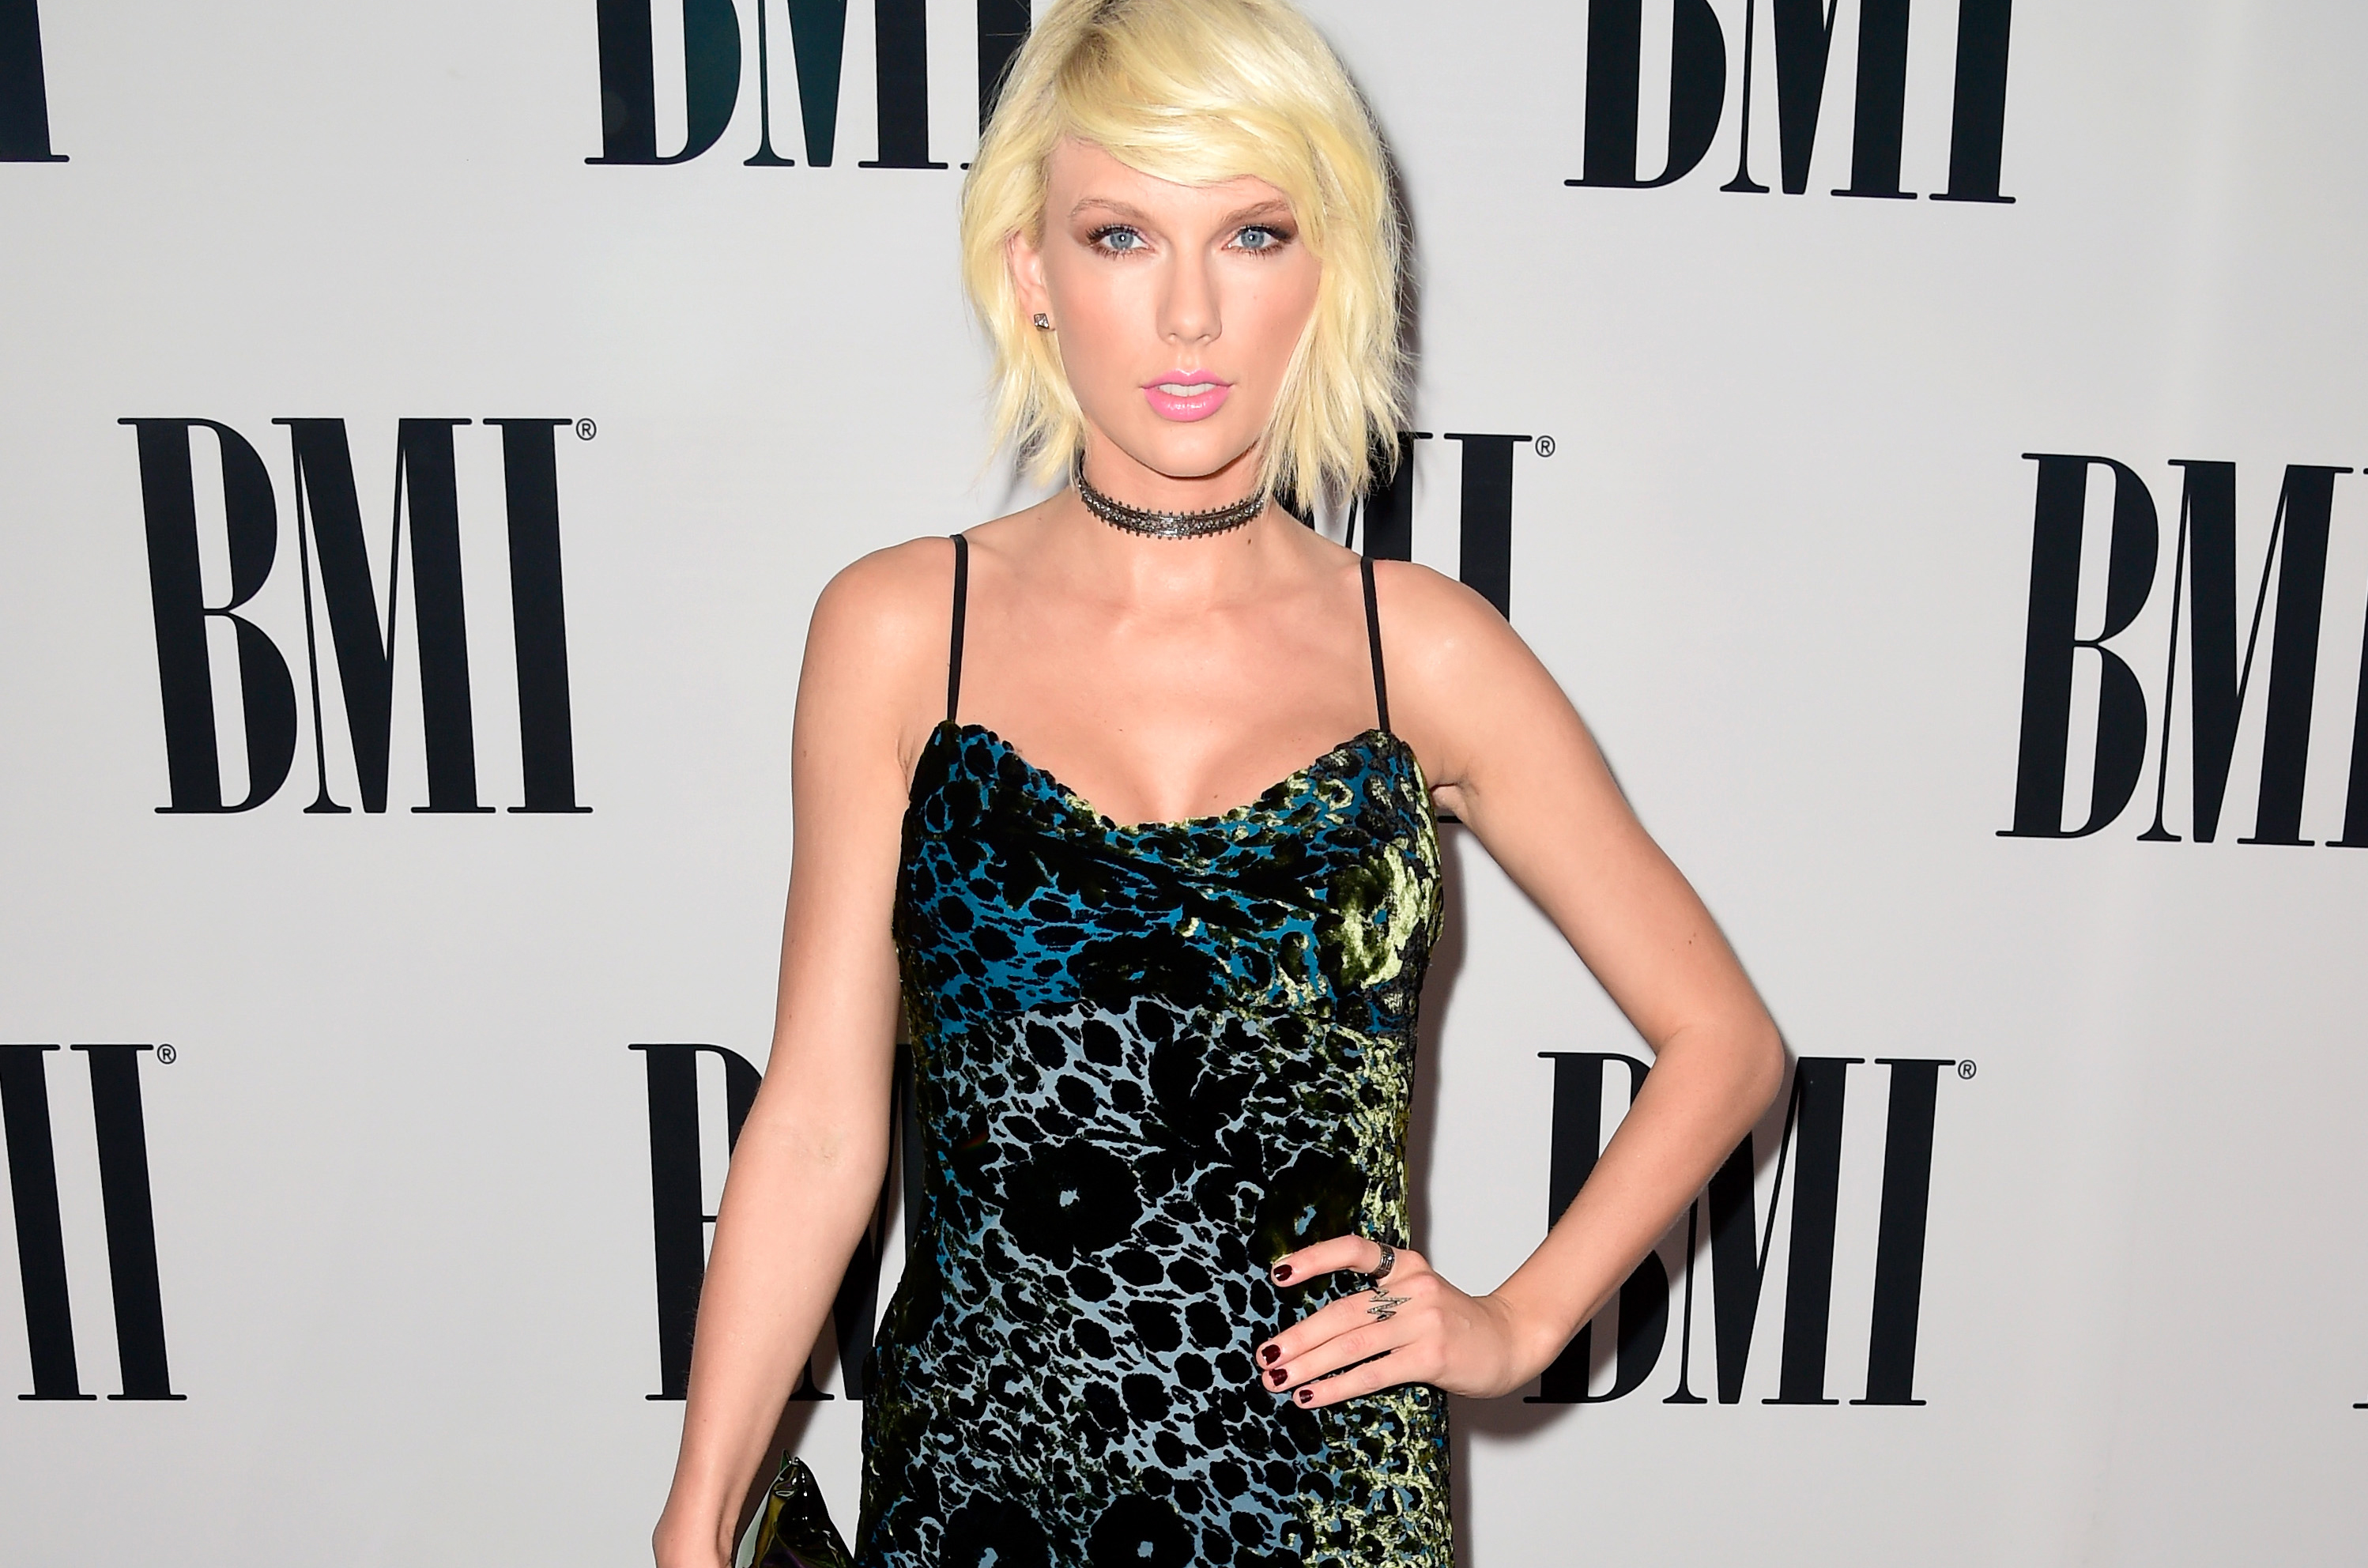 Foto: Frazer Harrison/Getty Images for BMI